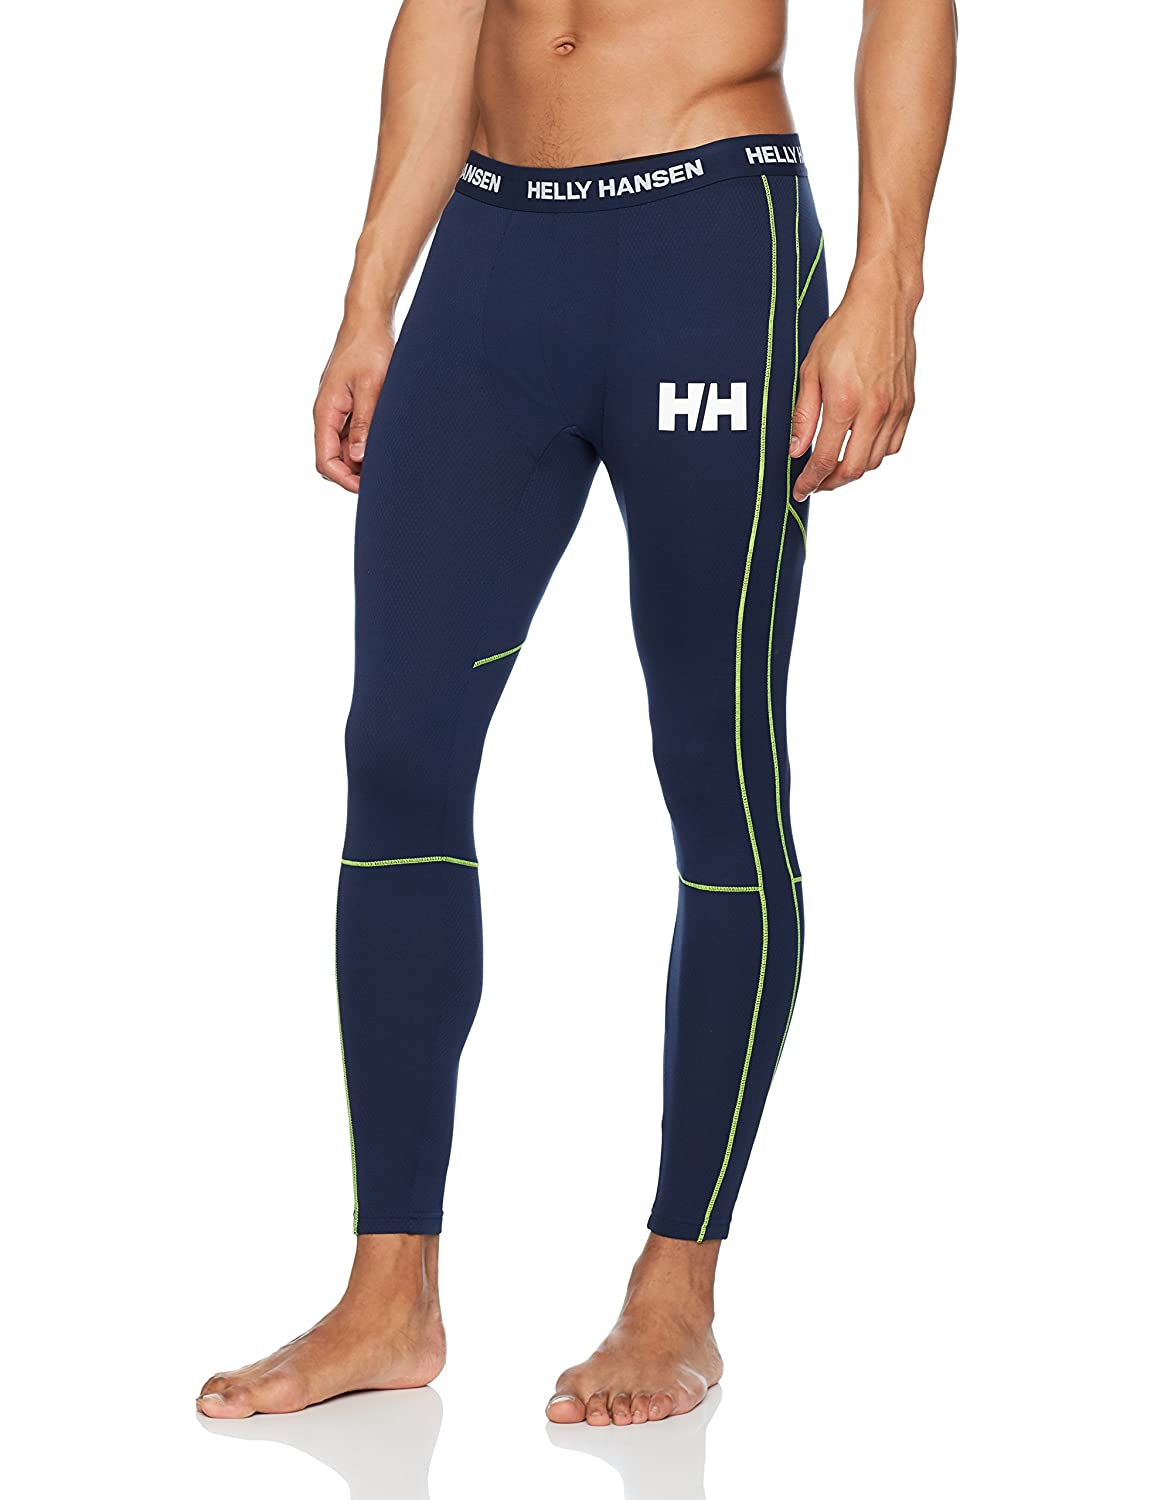 Helly Hansen Lifa Active Base Layer Pants B06XH1QGH2-p